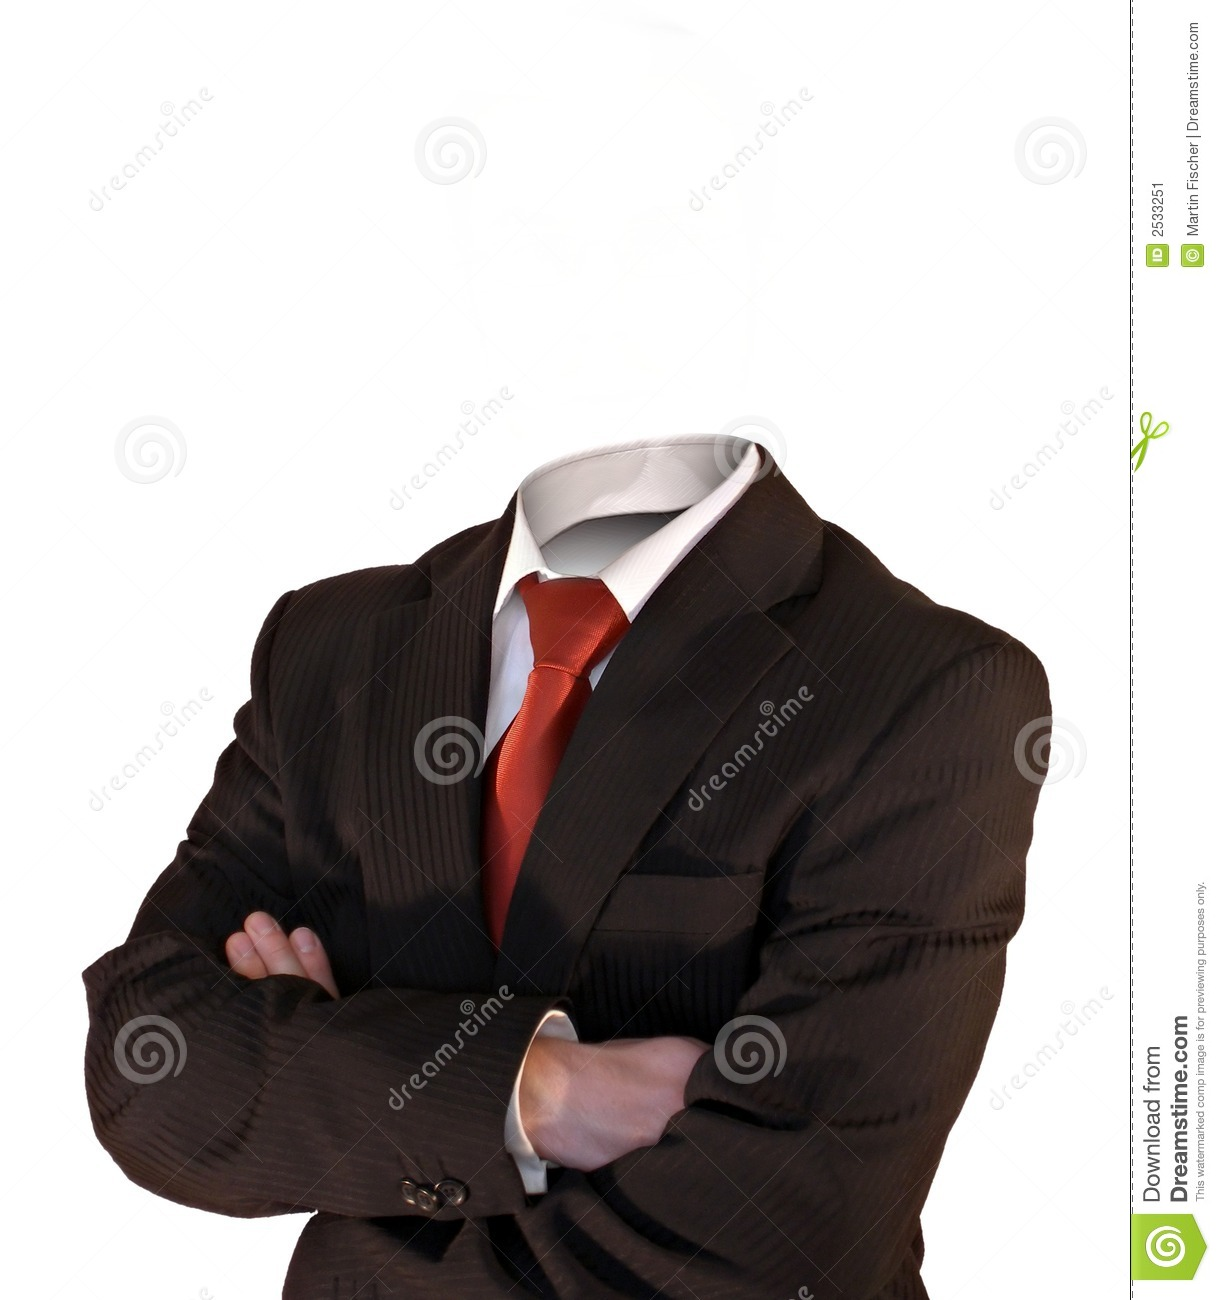 headless-business-man-2533251.jpg